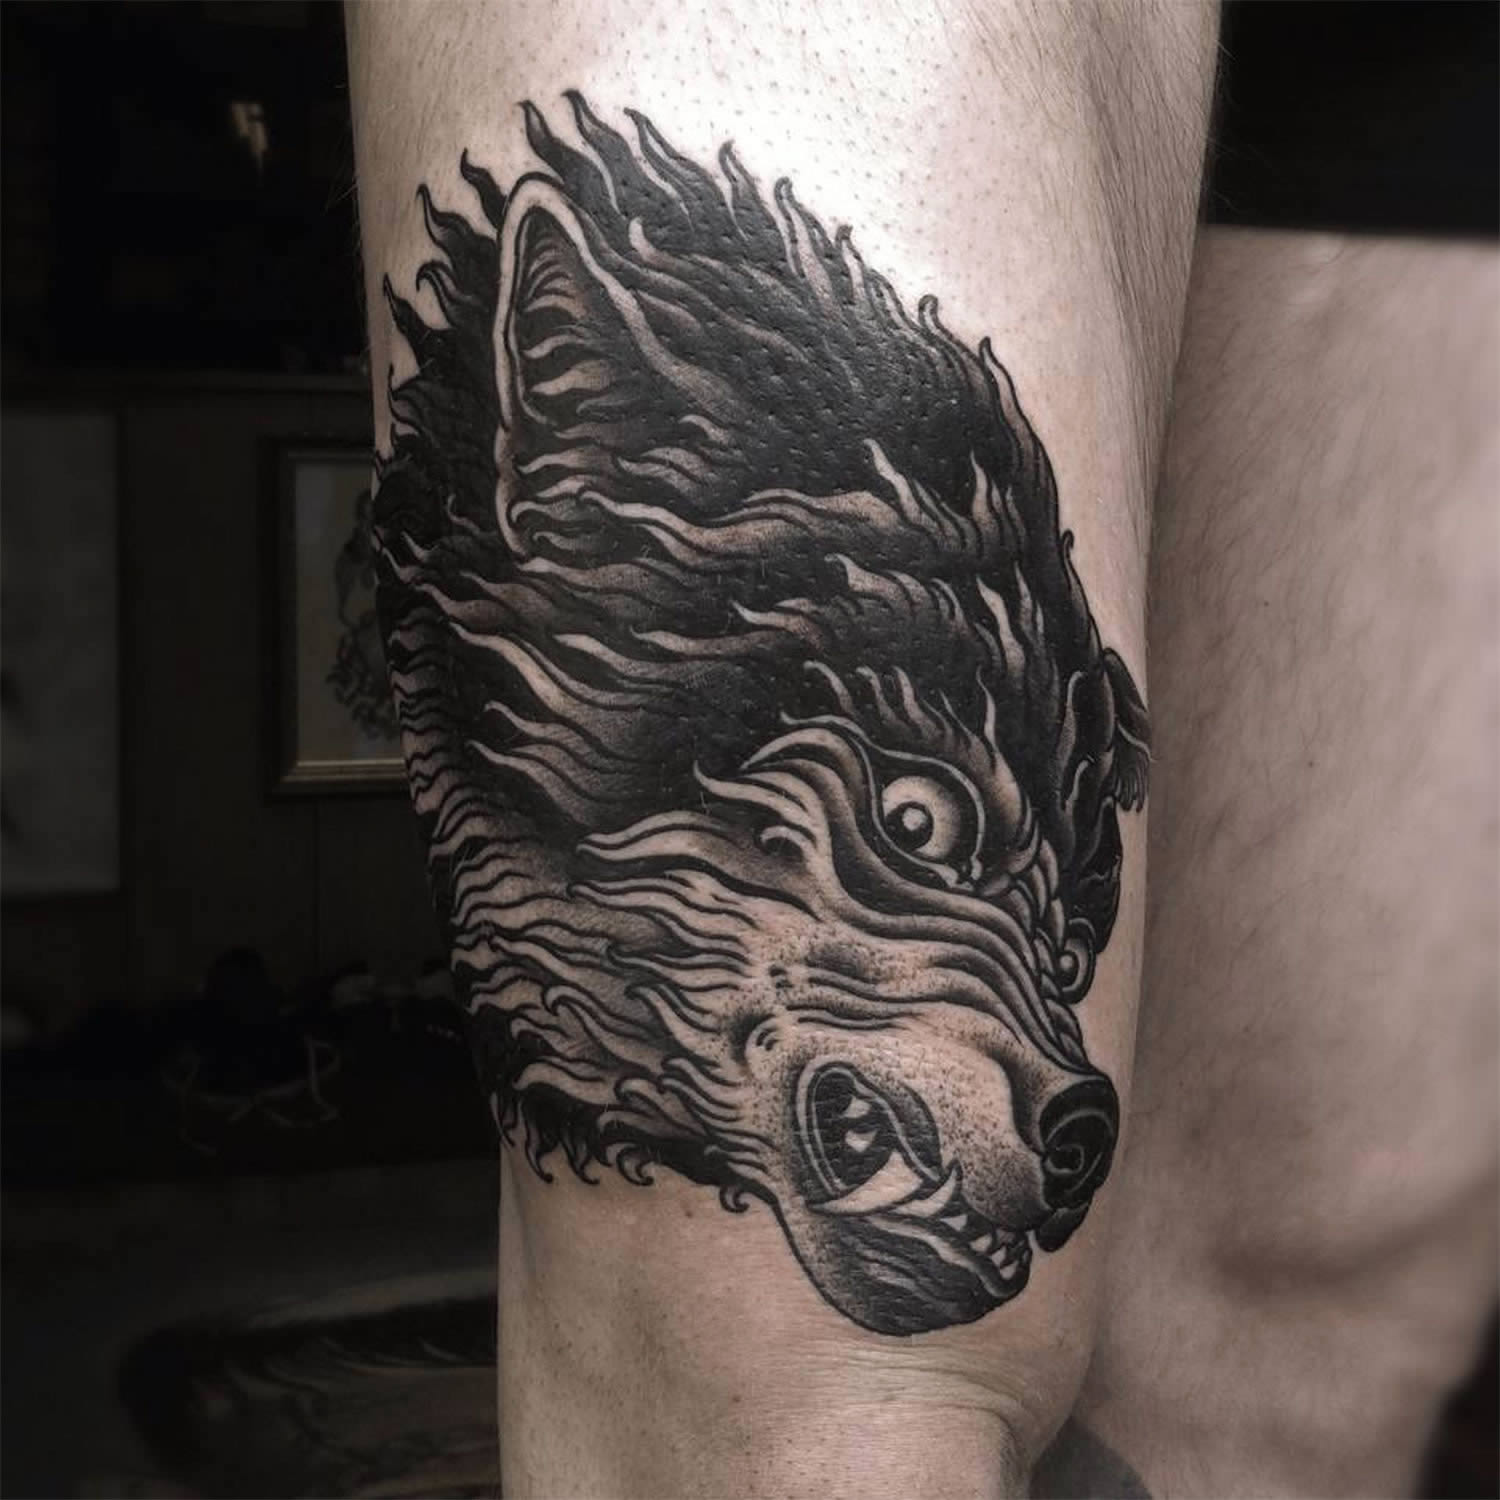 wolf tattoo on leg by alexander grim